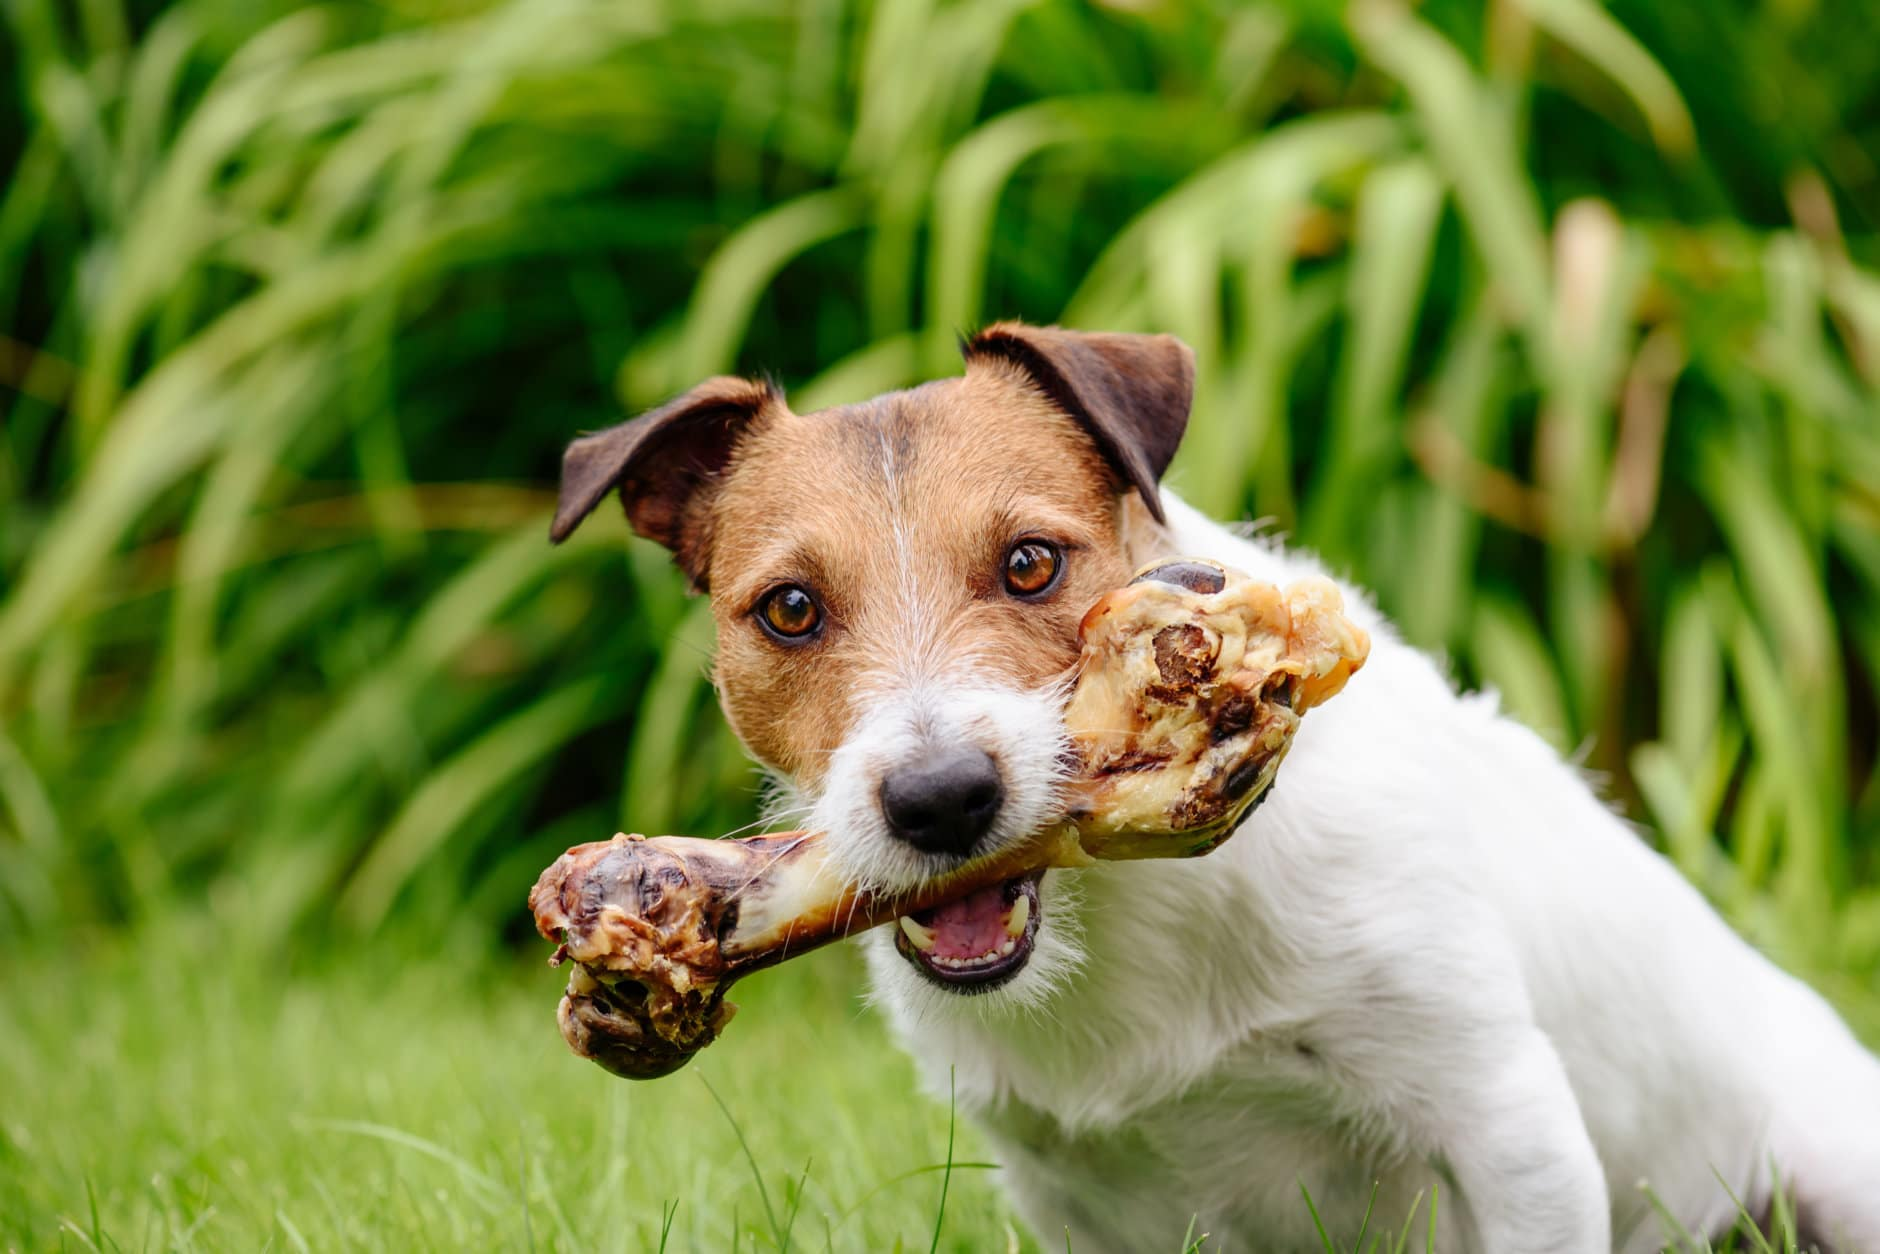 Jack Russell Terrier holdings in mouth big bone